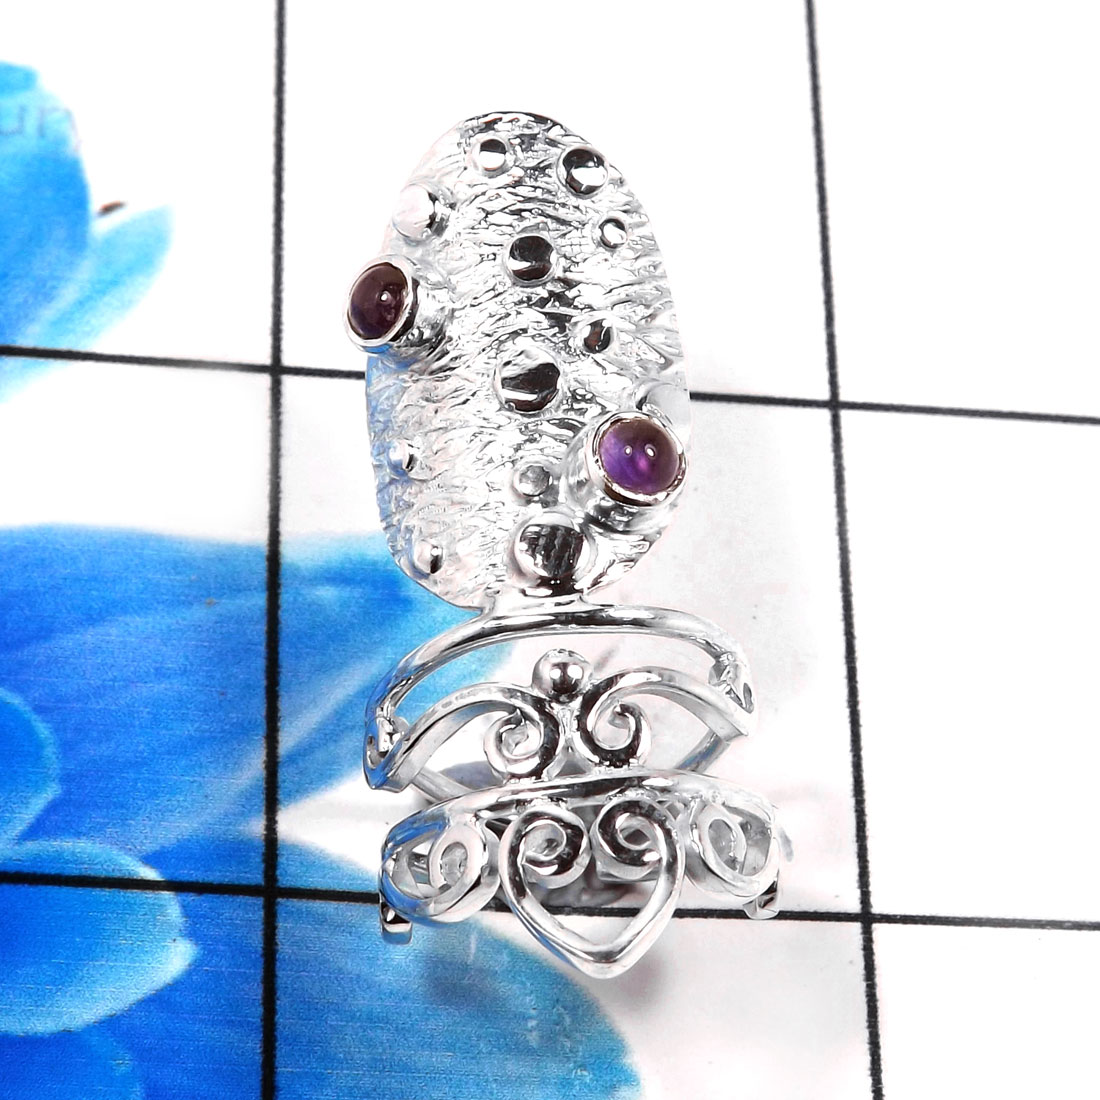 Nails Ring G - SNR994-Amazing Designer Handmade 925 Sterling Silver Nails Ring